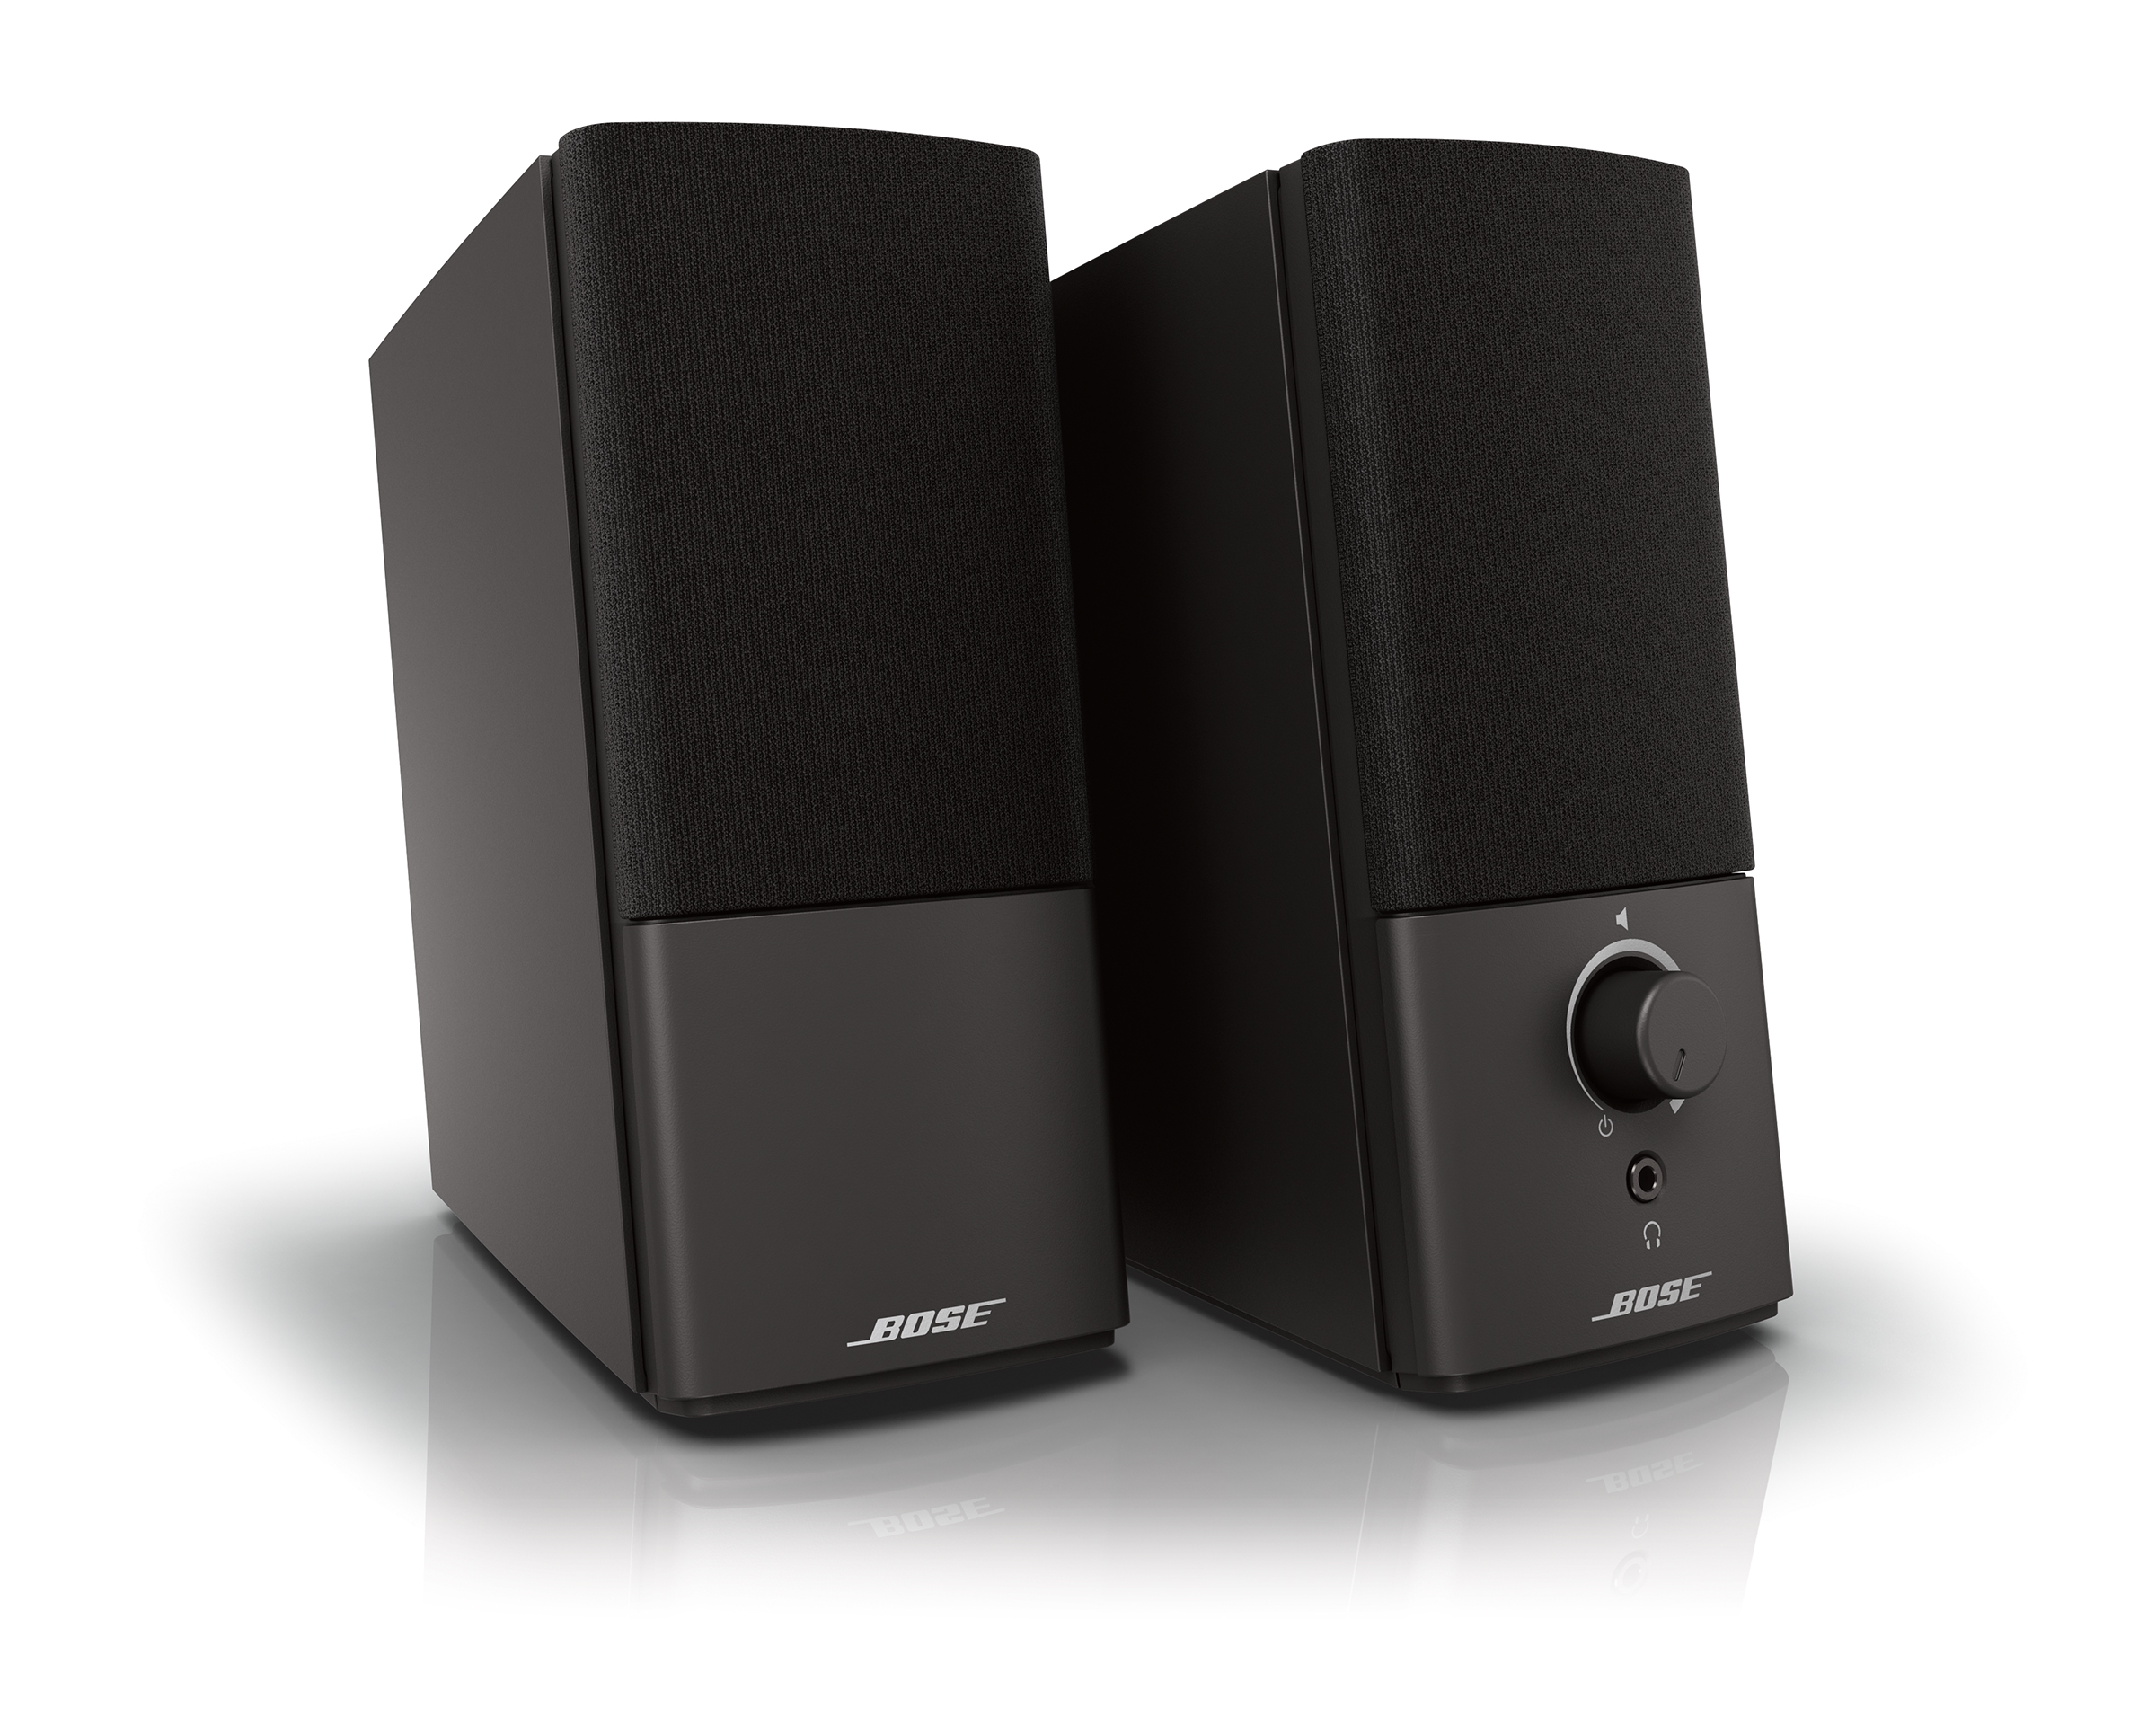 Bose Companion 2 Series III Multimedia Computer Speaker System by Bose